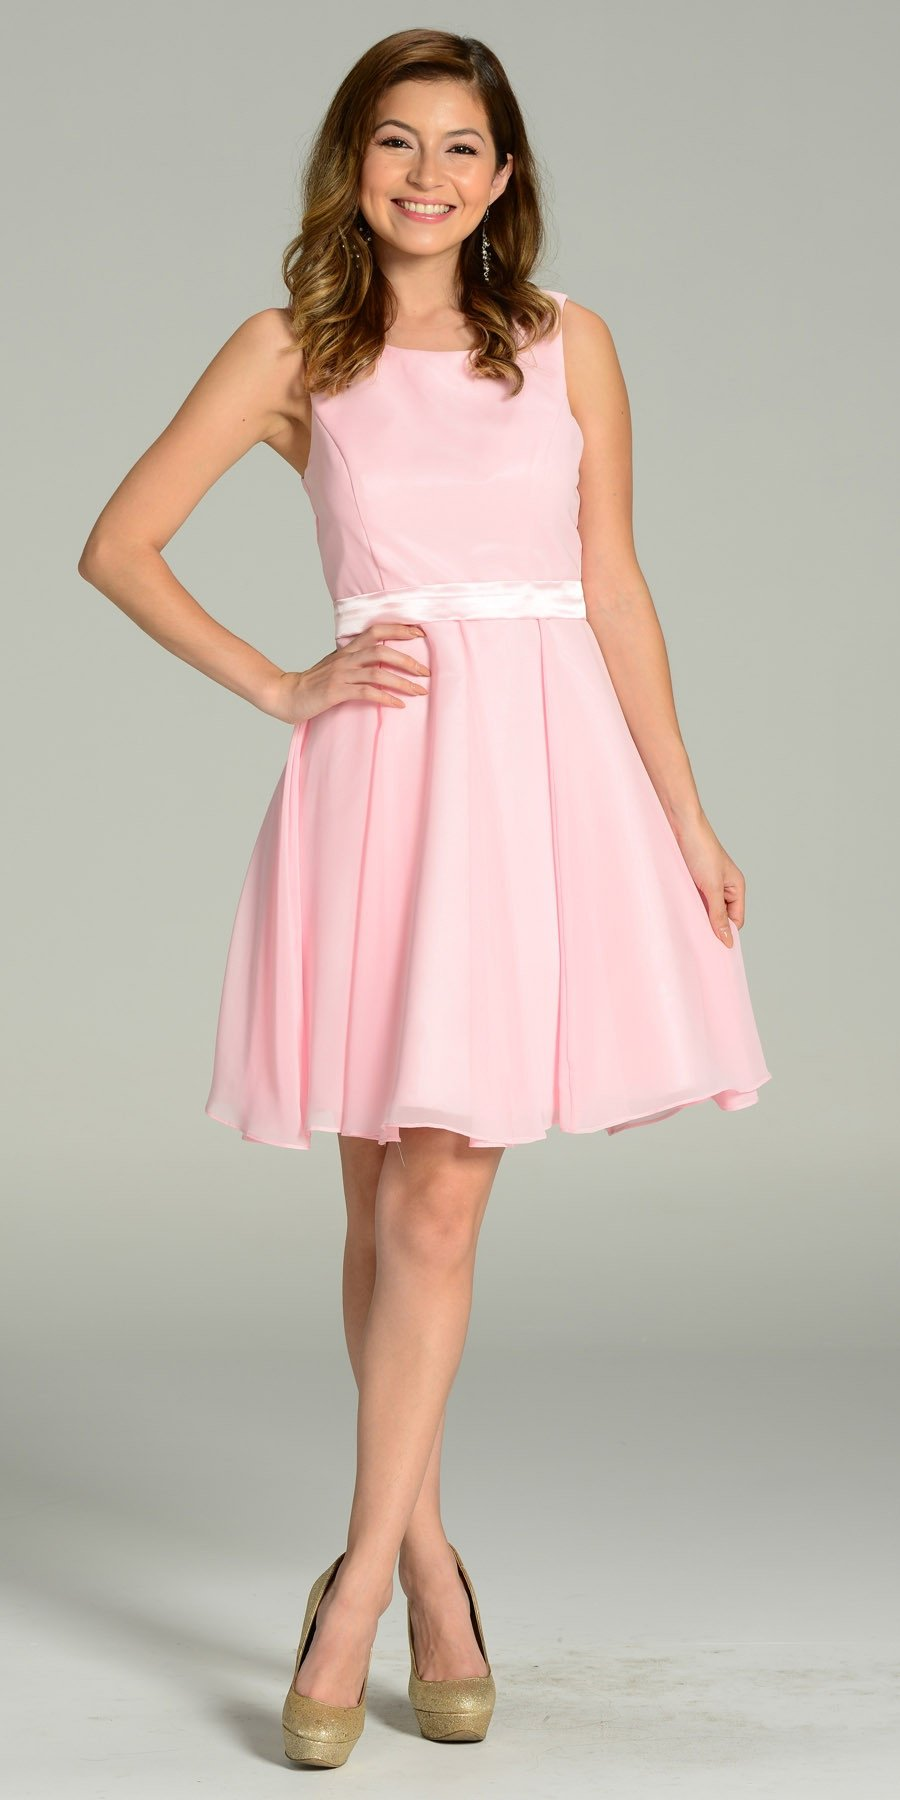 a1292f66d9 Modest Pink Semi Formal Chiffon Dress Knee Length A Line. Tap to expand